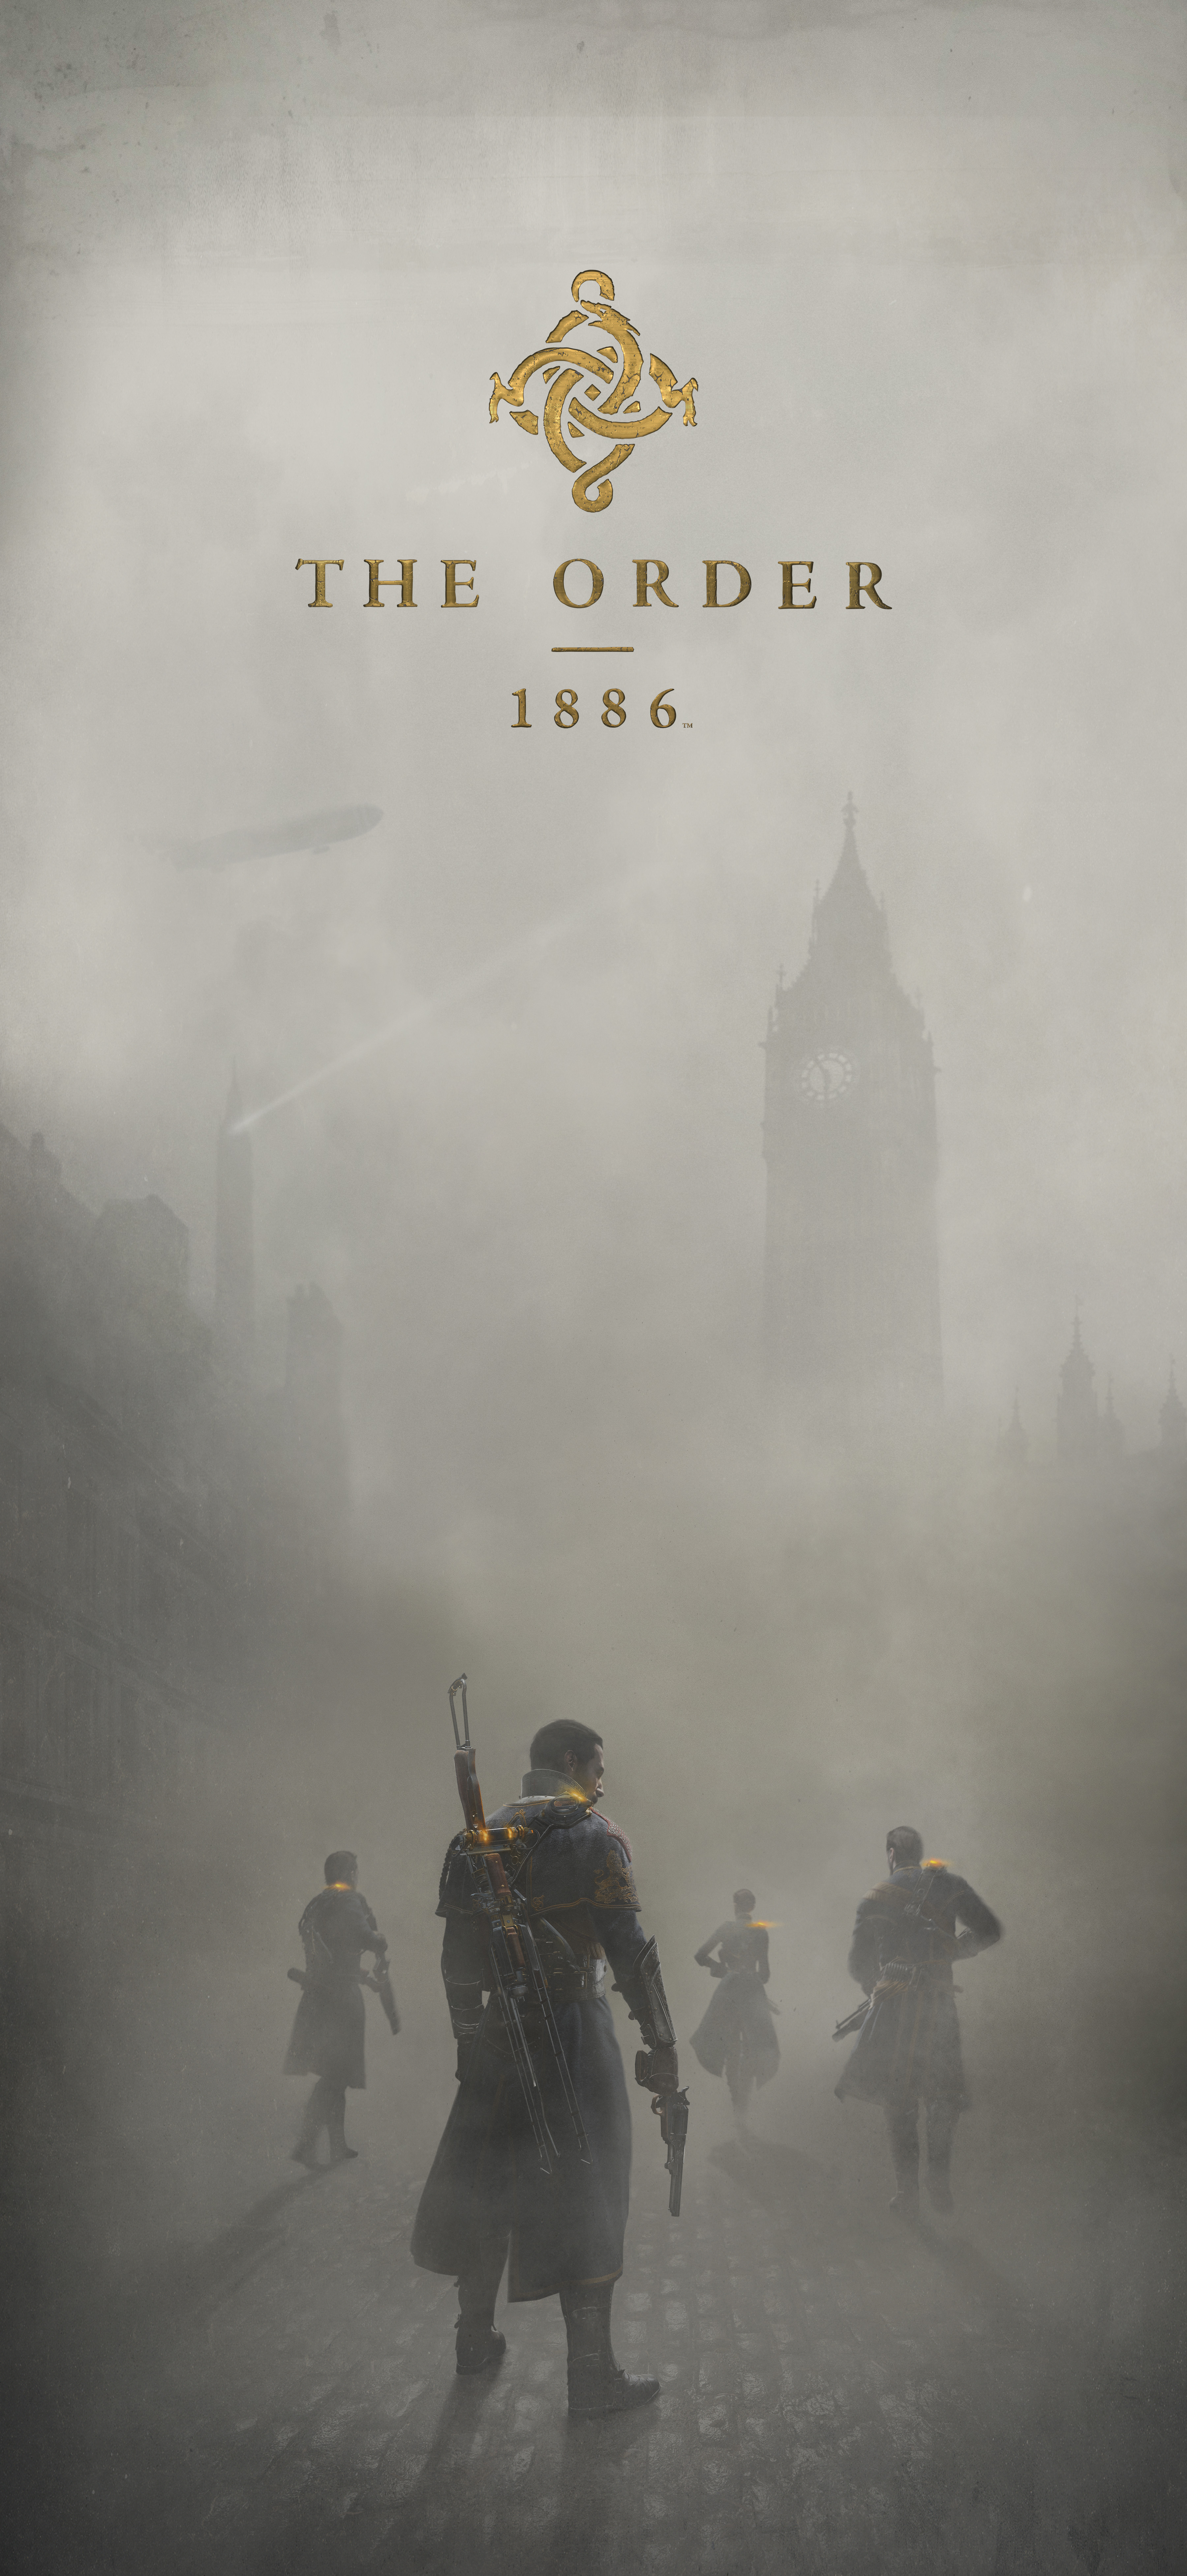 Knights Of The Round Table Wiki Knights Of The Round Table The Order 1886 Wiki Fandom Powered